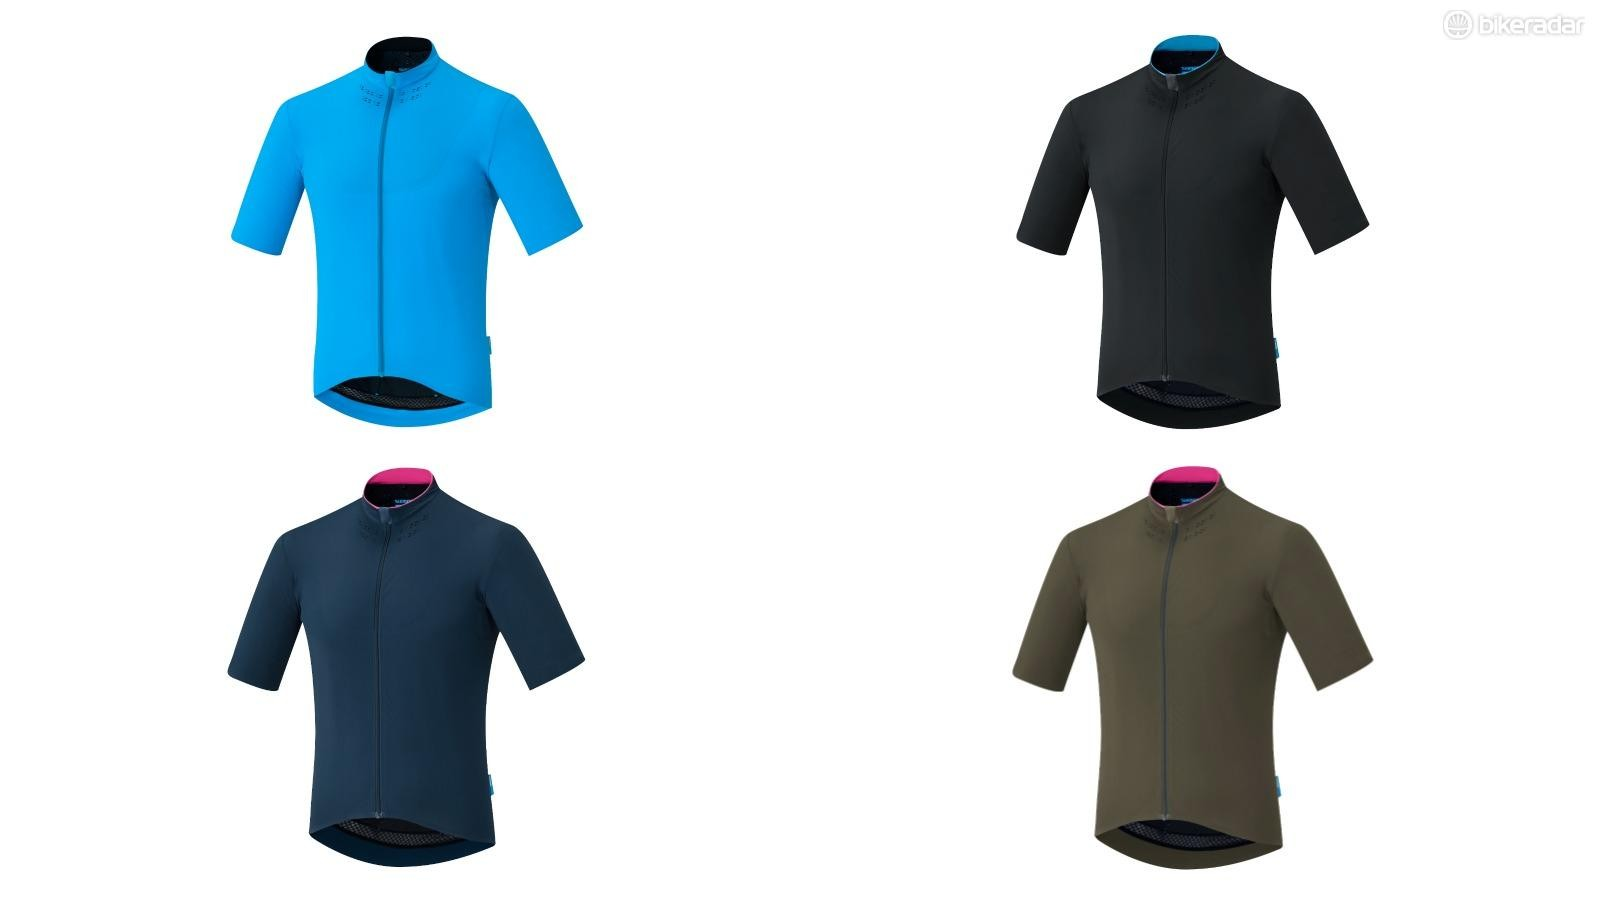 The new Evolve jersey is available in four different colours